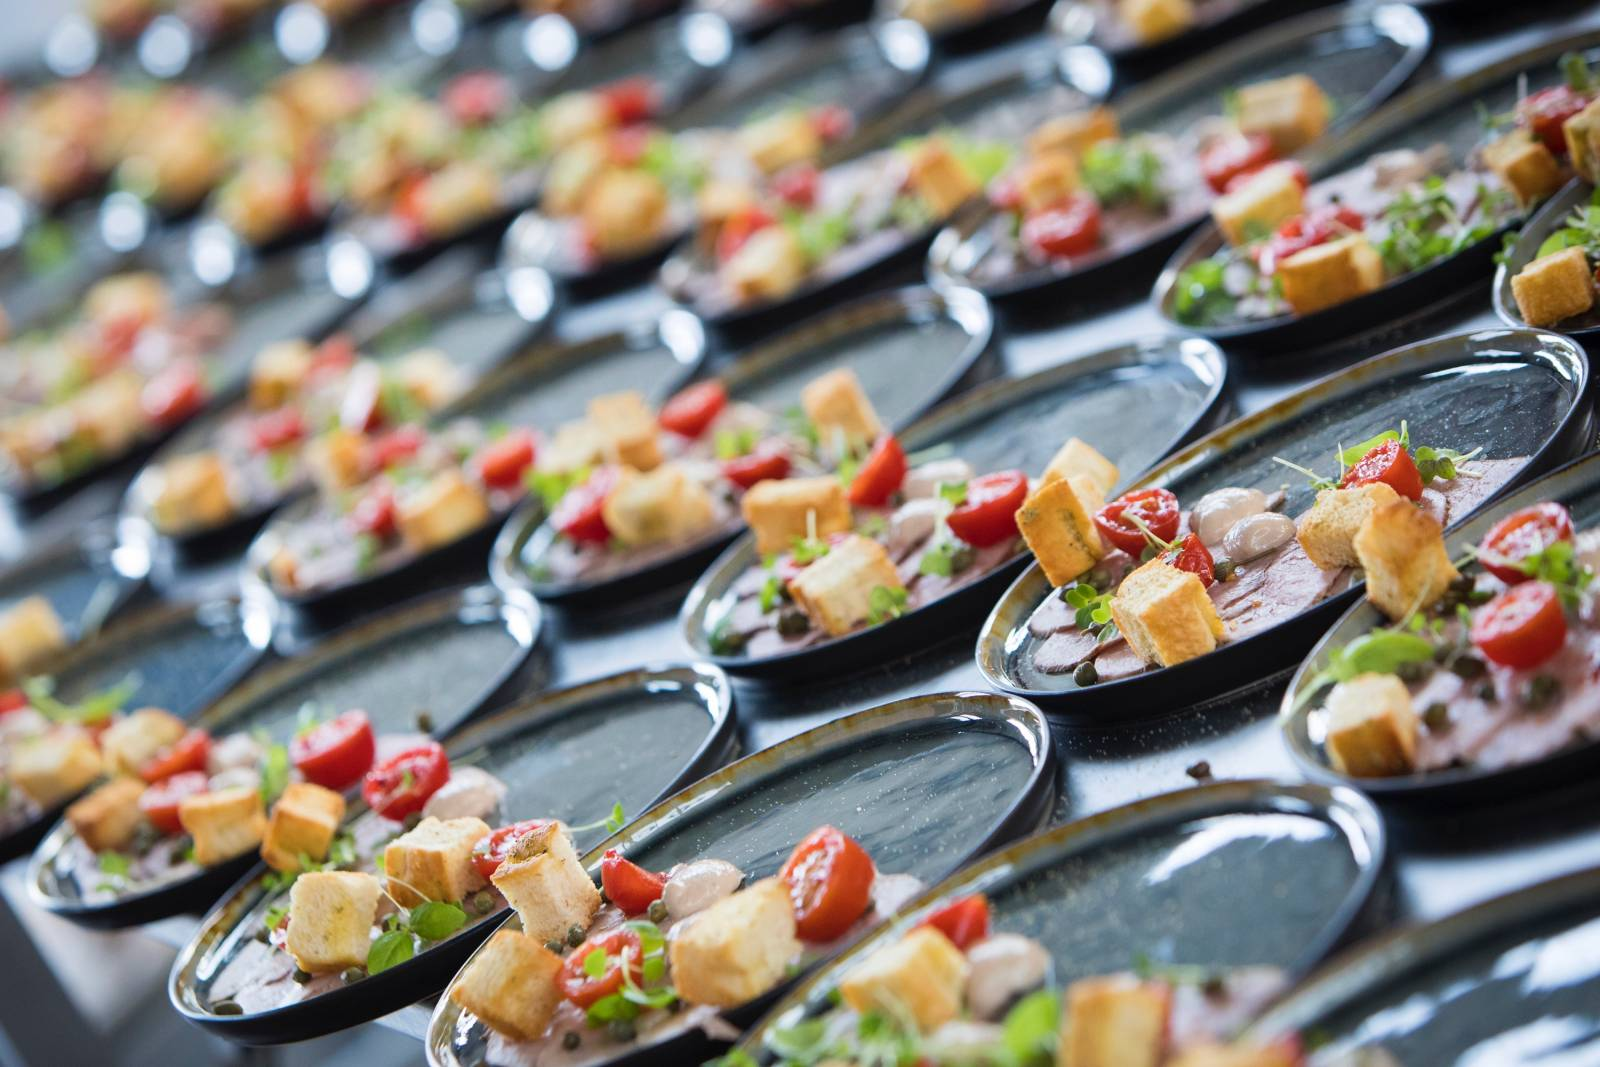 Cuisine Catering - Catering - Traiteur – House of Weddings - 5